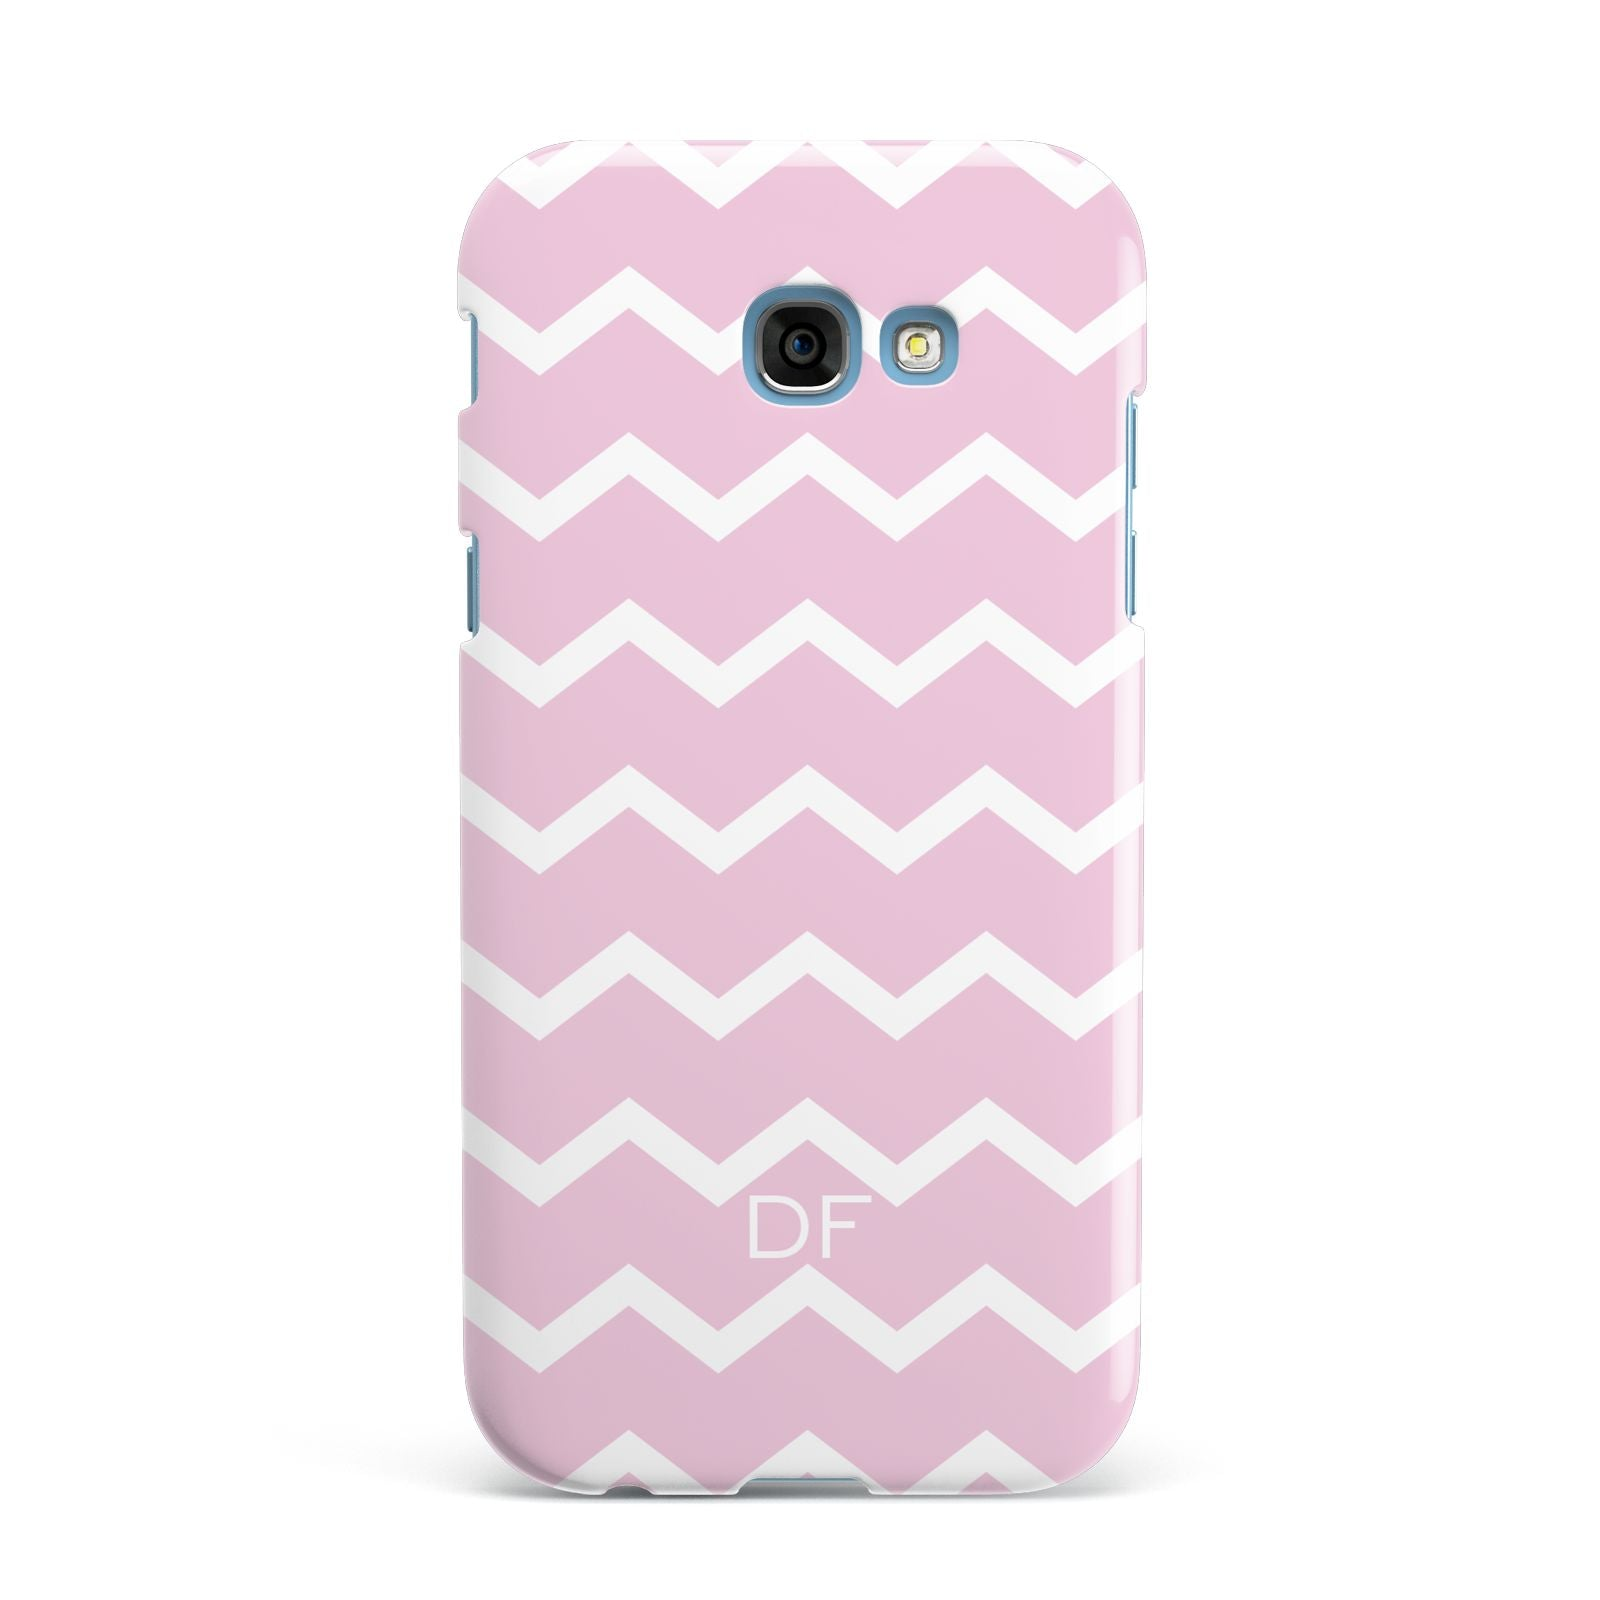 Personalised Chevron Pink Samsung Galaxy A7 2017 Case